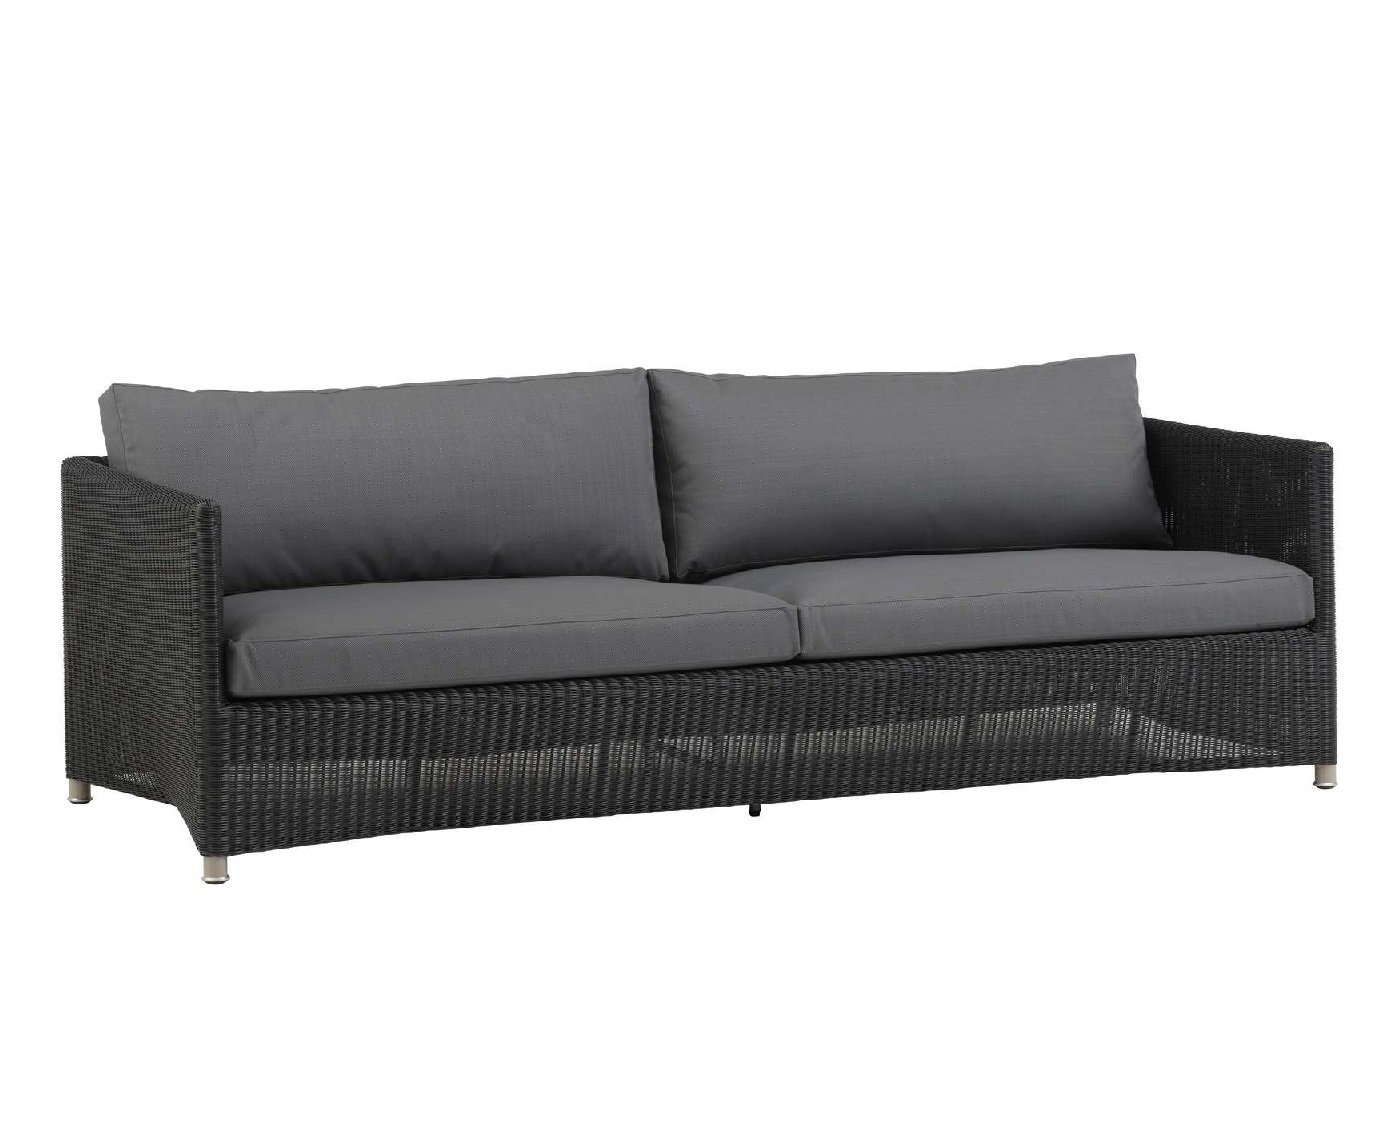 Diamond 3-seater sofa